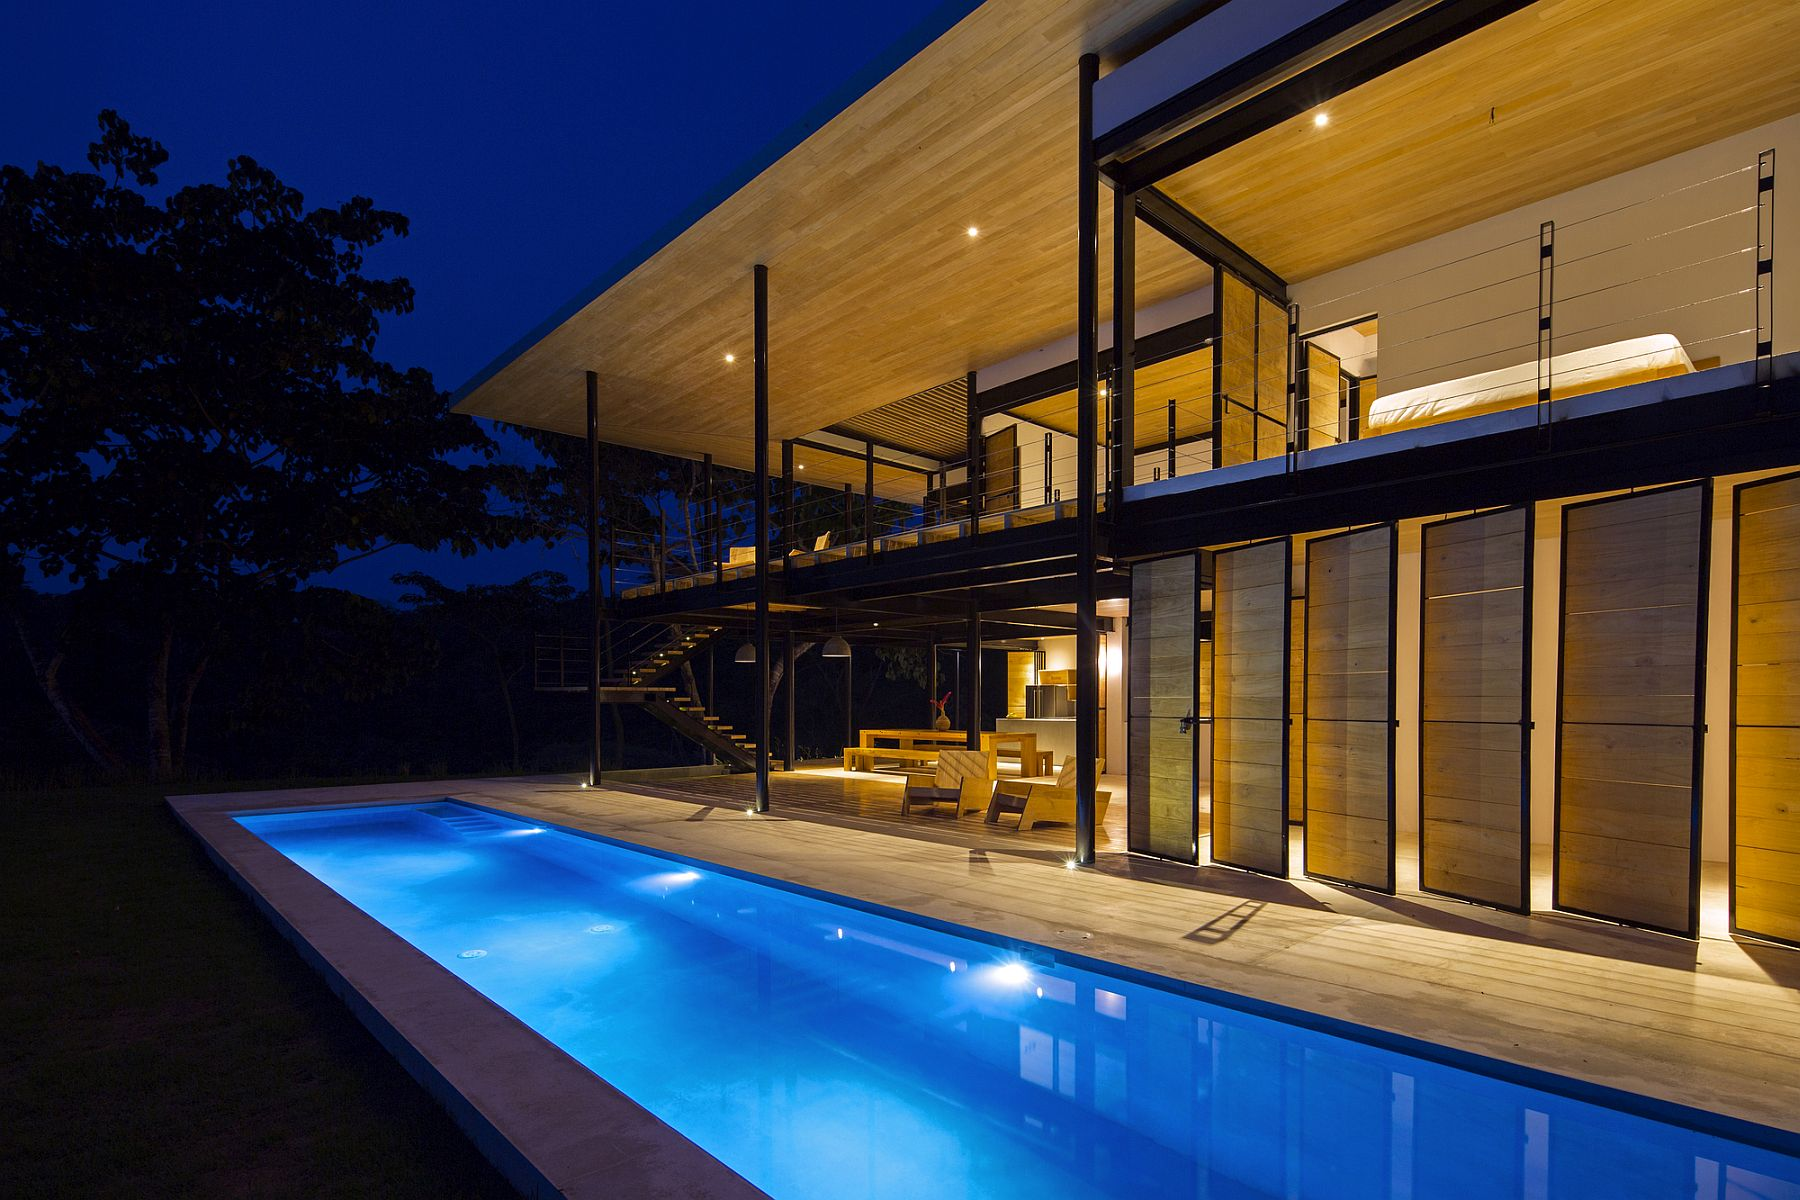 Lighting showcases the open and breezy Costa Rican home in a completely different light!